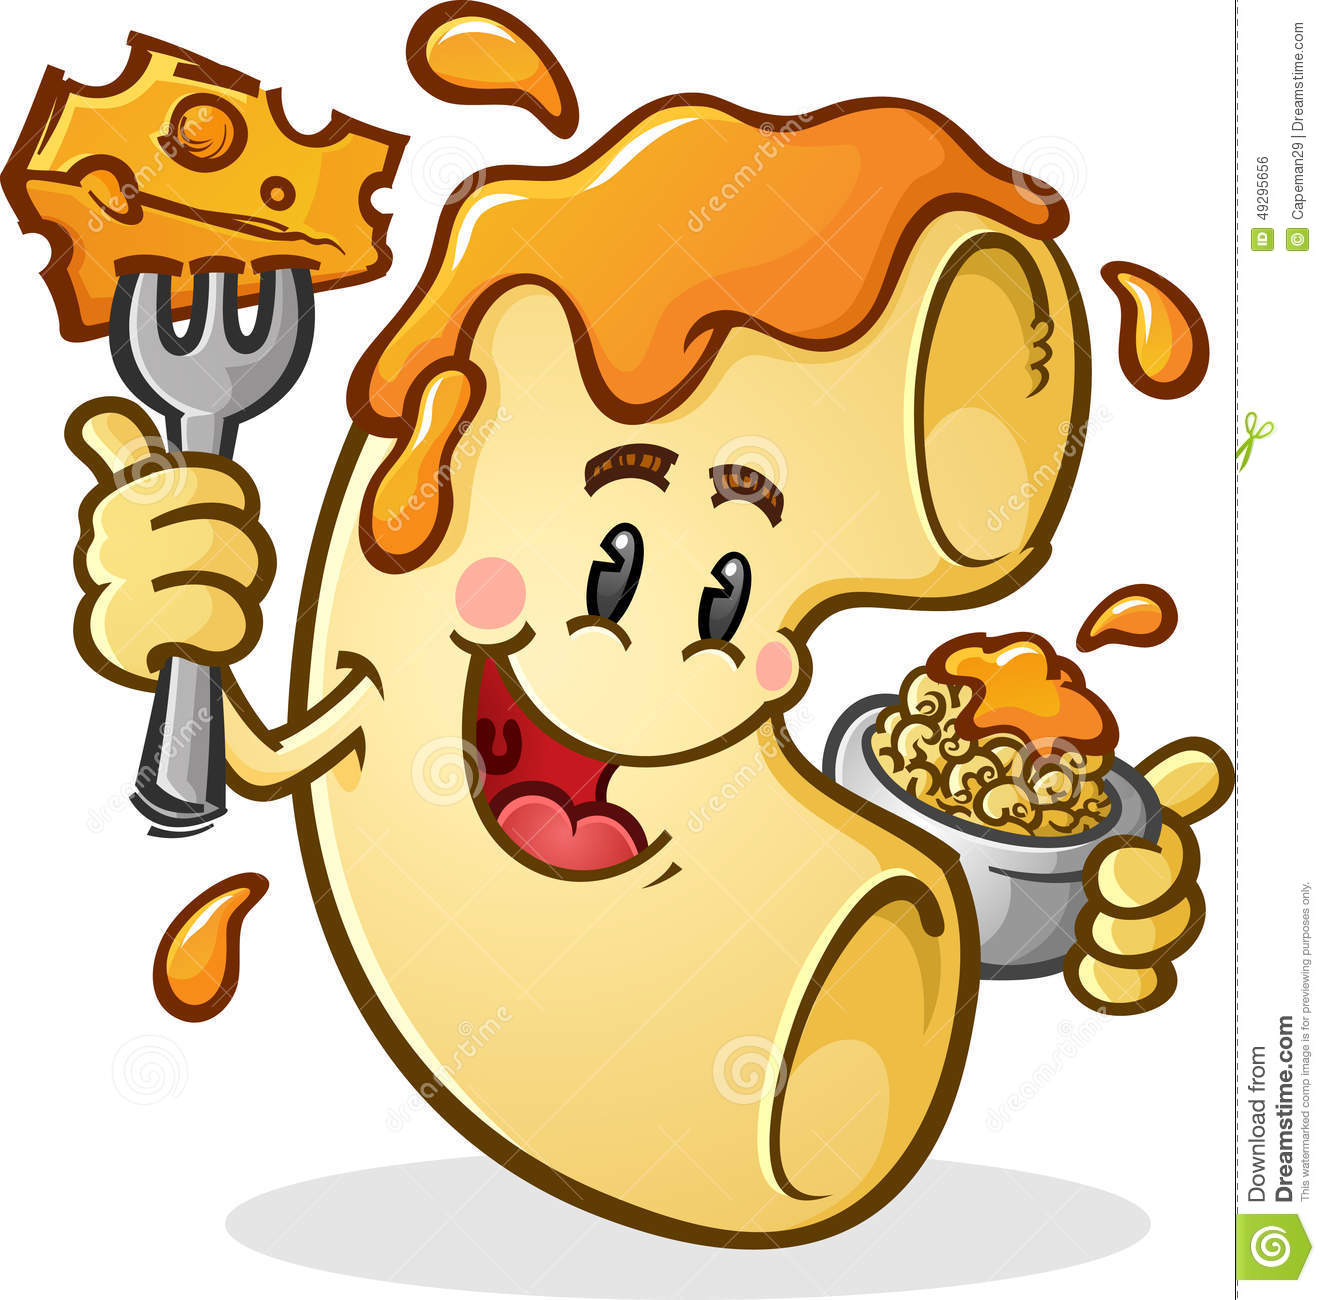 Macaroni And Cheese Clipart  clipartsgramcom